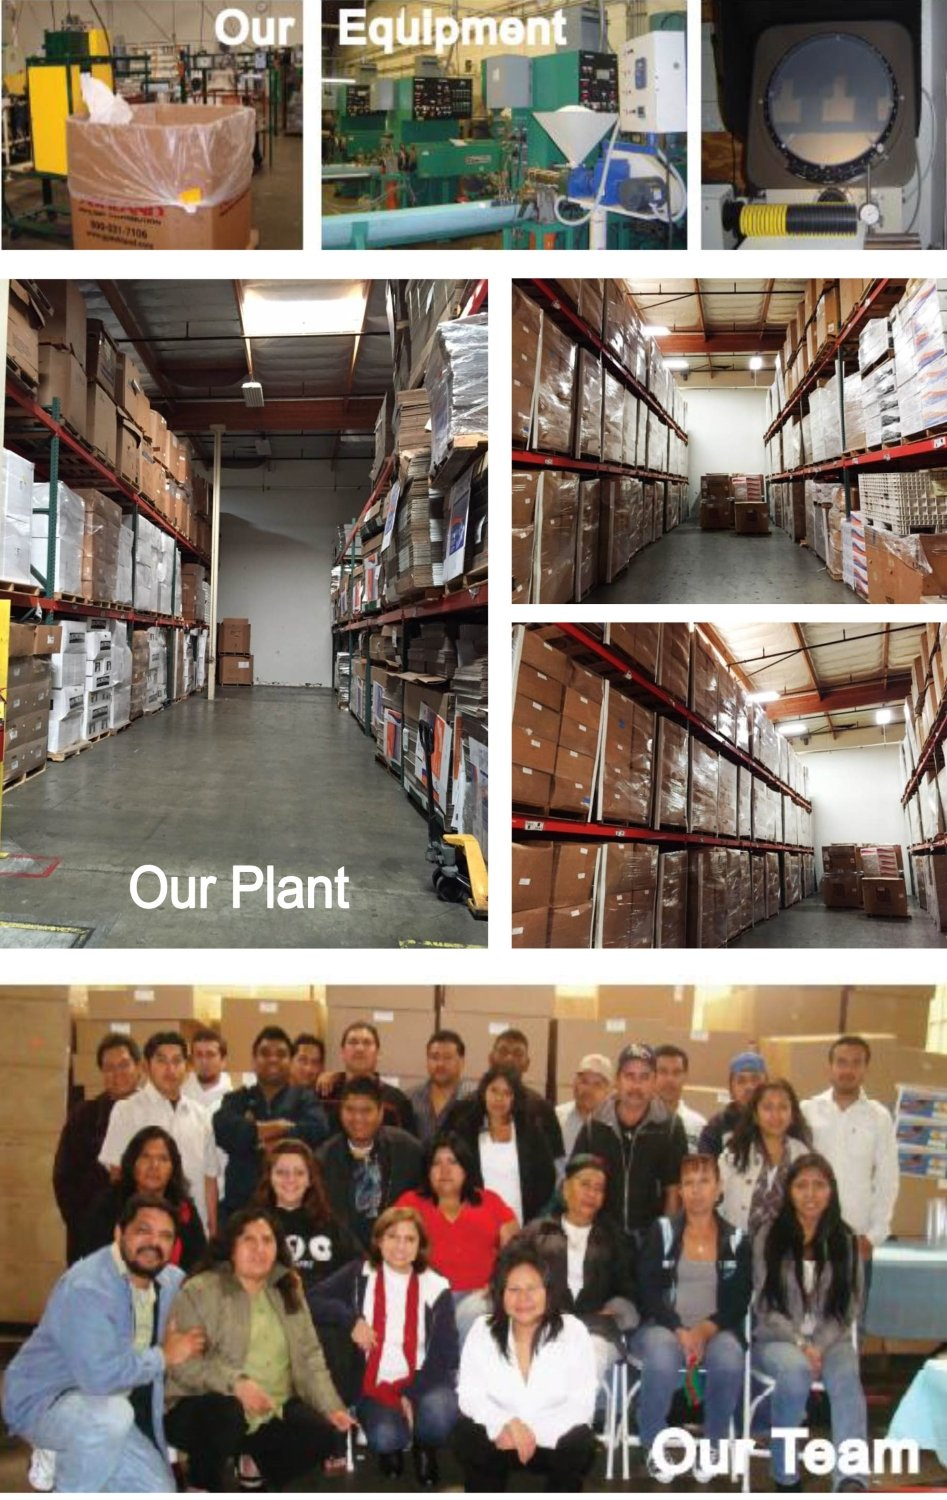 Made-in-California-Manufacturer-Amflex-Equipment-Plant-and-Team-Pix-5x316